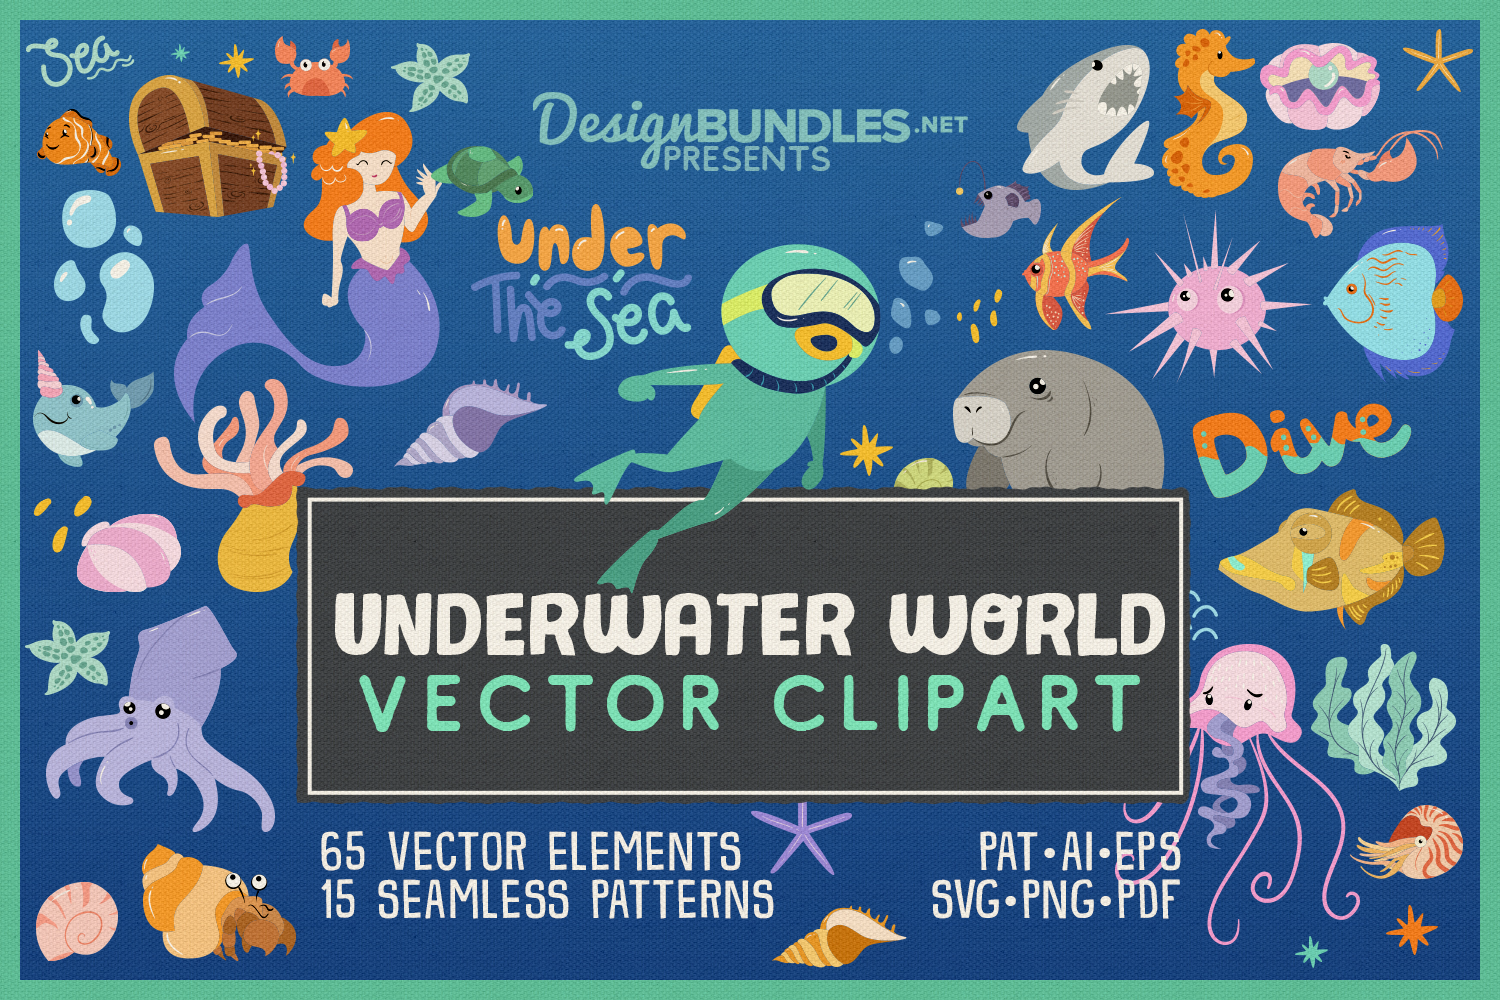 Underwater world clipart banner transparent stock Underwater World 65 Vector Clipart & Seamless Patterns banner transparent stock